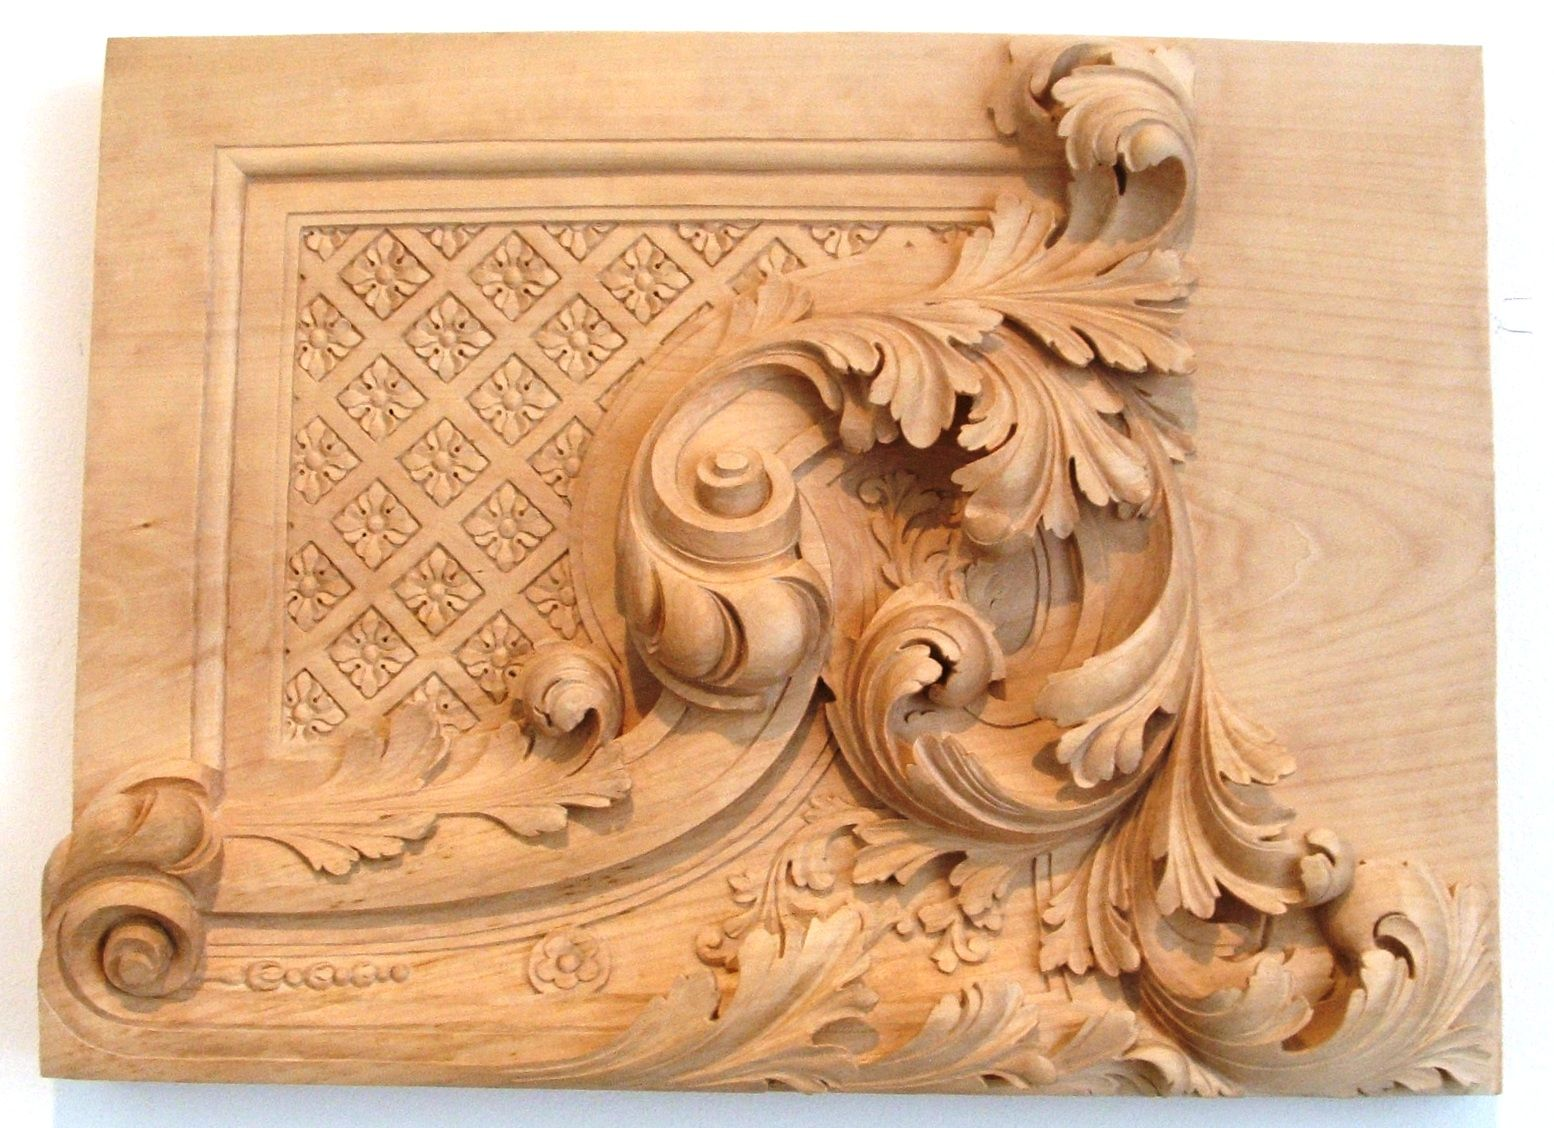 Wood Carving Art - PDF Plans 8x10x12x14x16x18x20x22x24 DIY ...